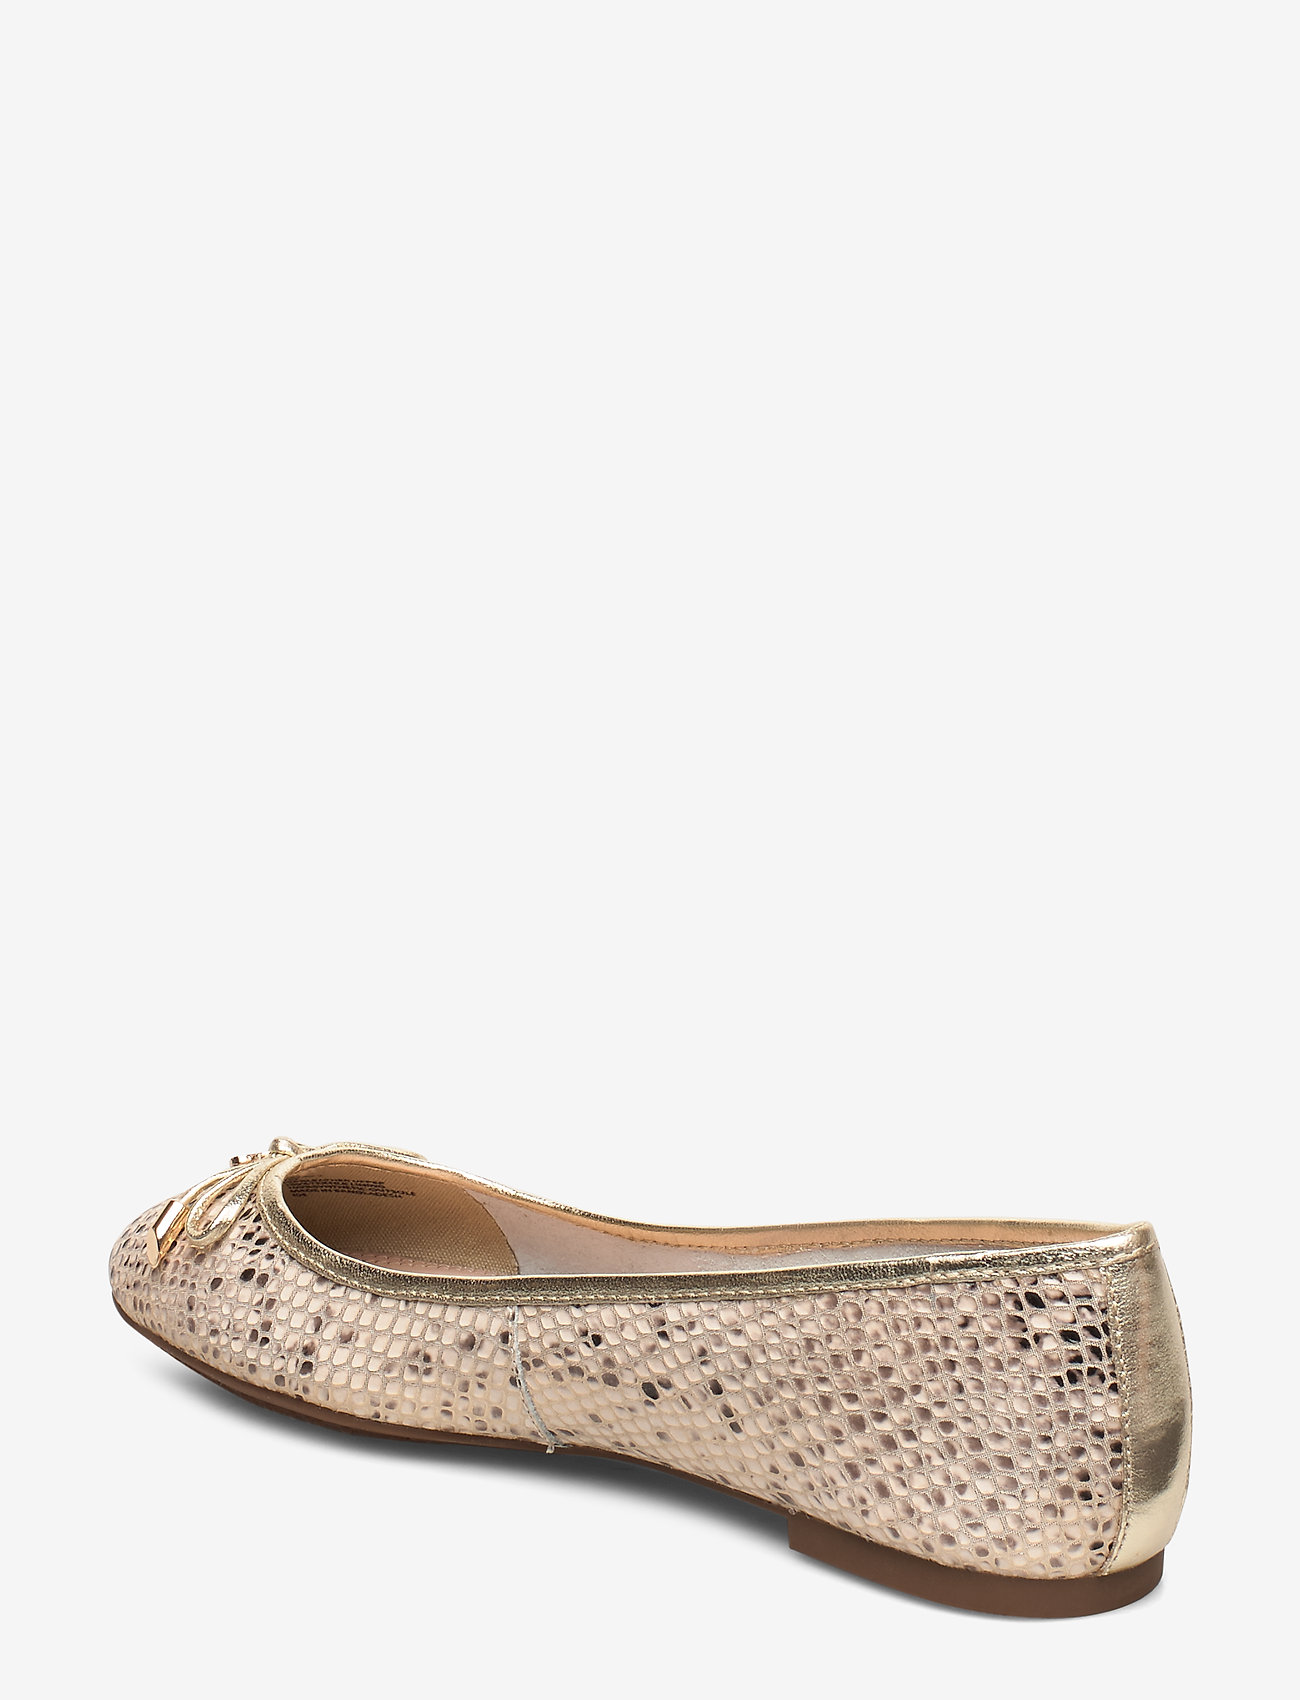 Harpar 2 (Natural Reptile_leather) (40 €) - Dune London 9QJna